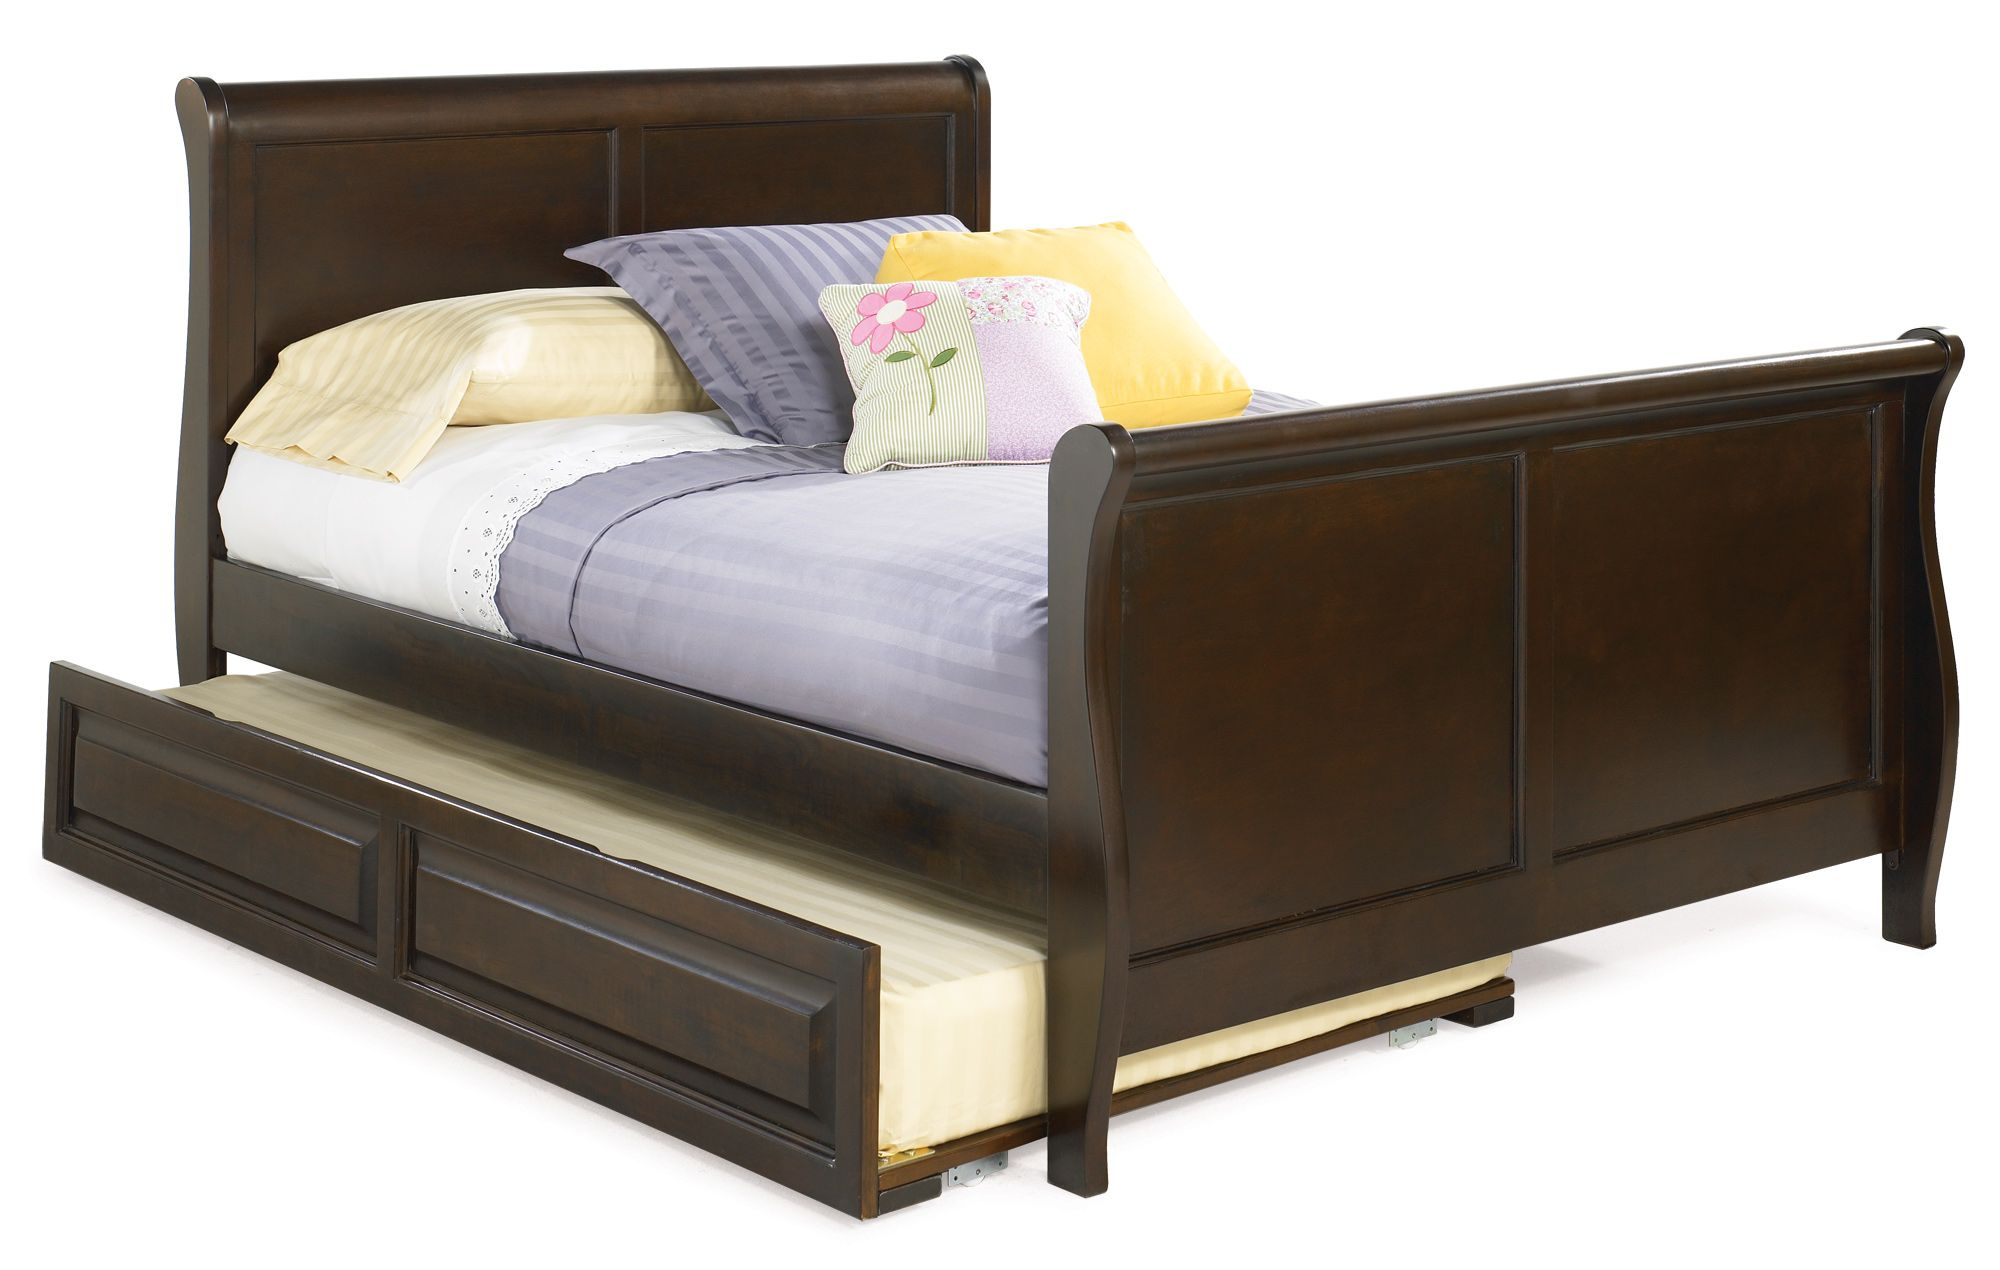 Queen Trundle Sleigh Bed With Purple Bed Linen And Cushions | Queen ...